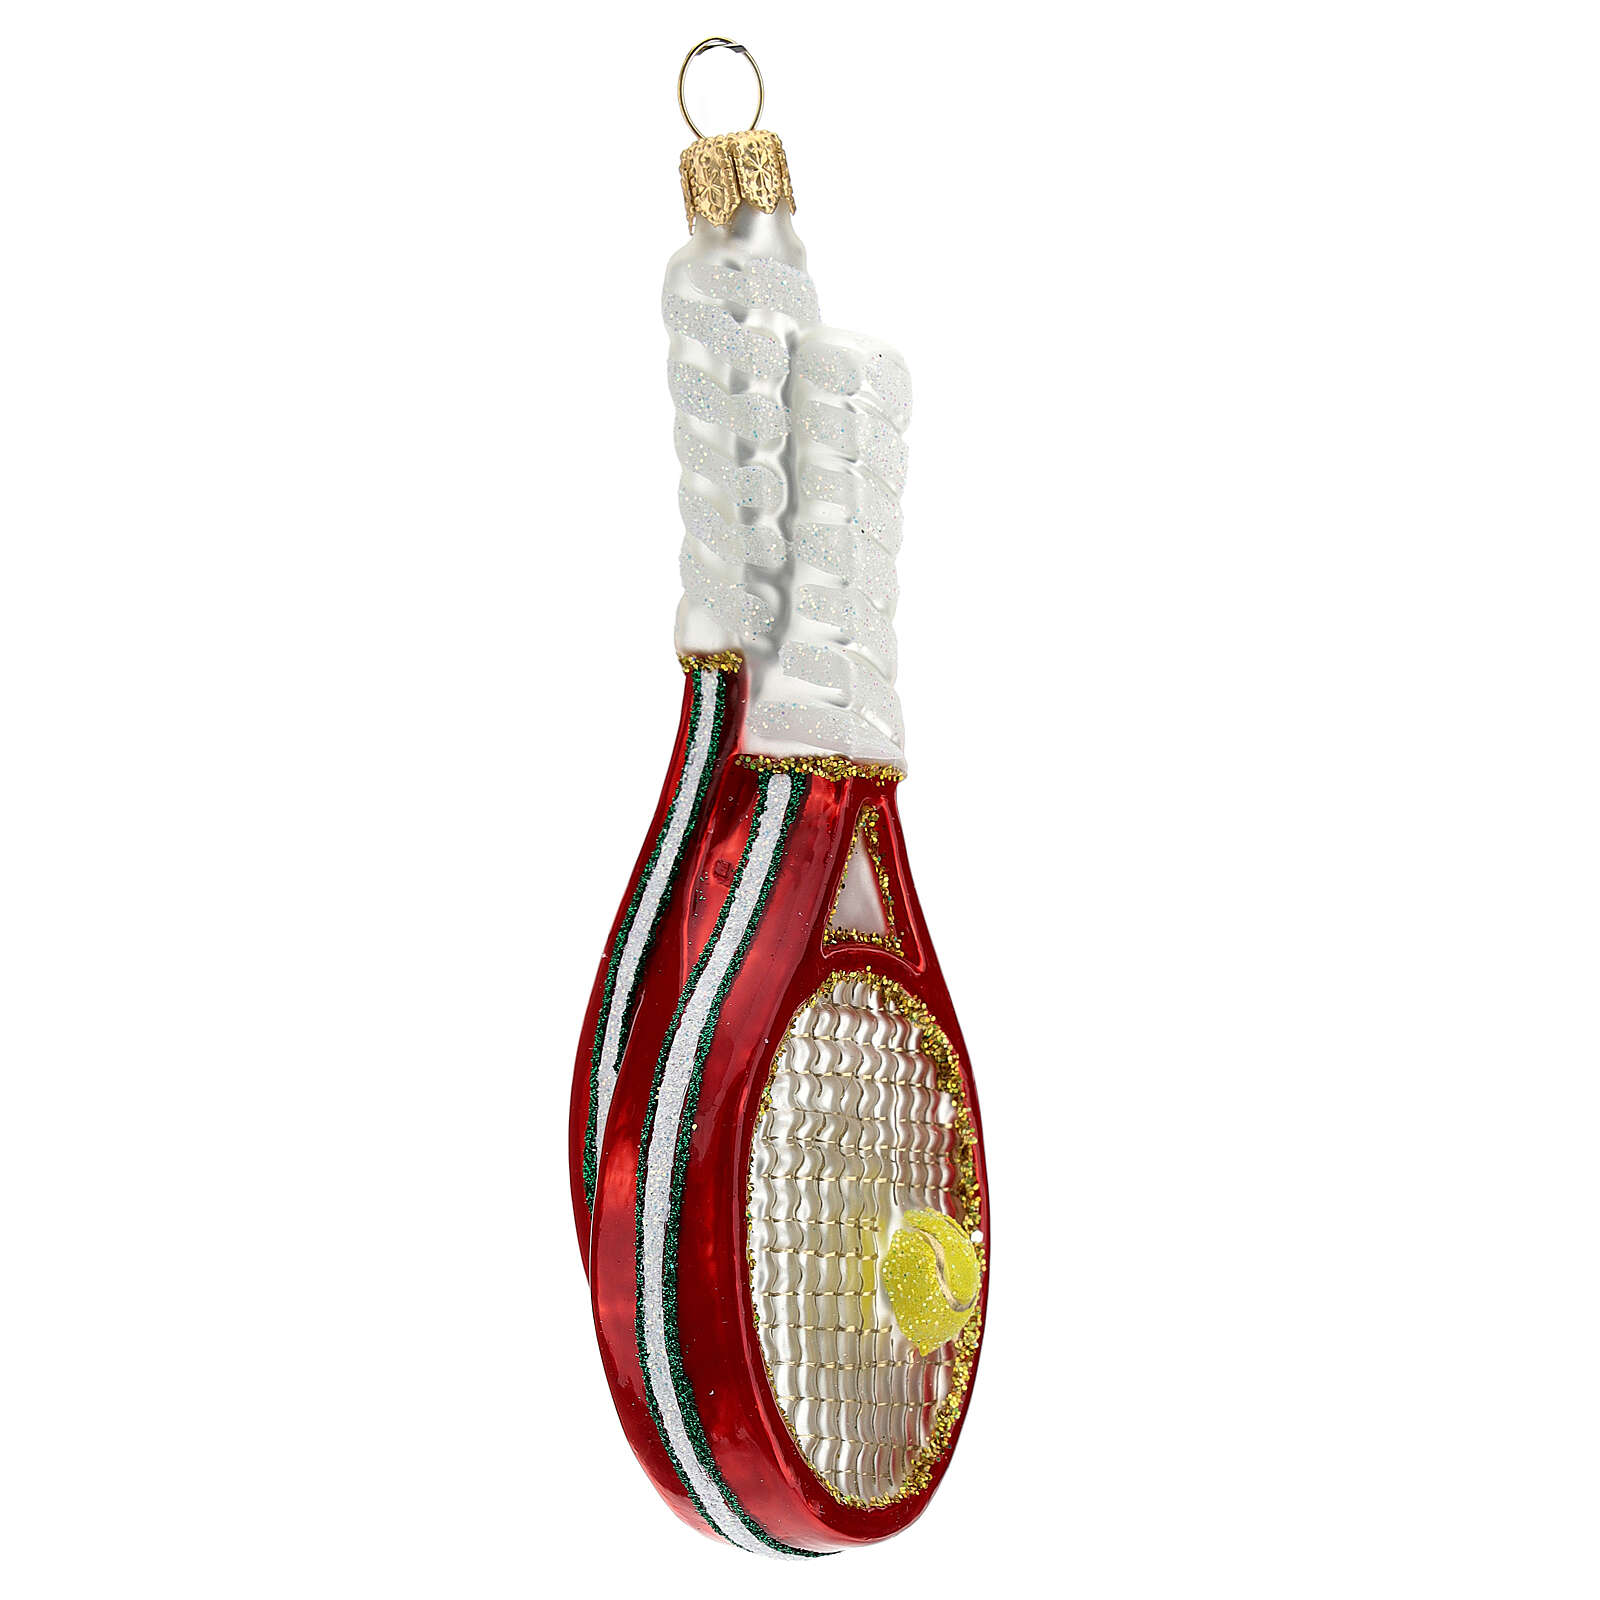 Blown glass Christmas ornament, tennis rackets and ball 4